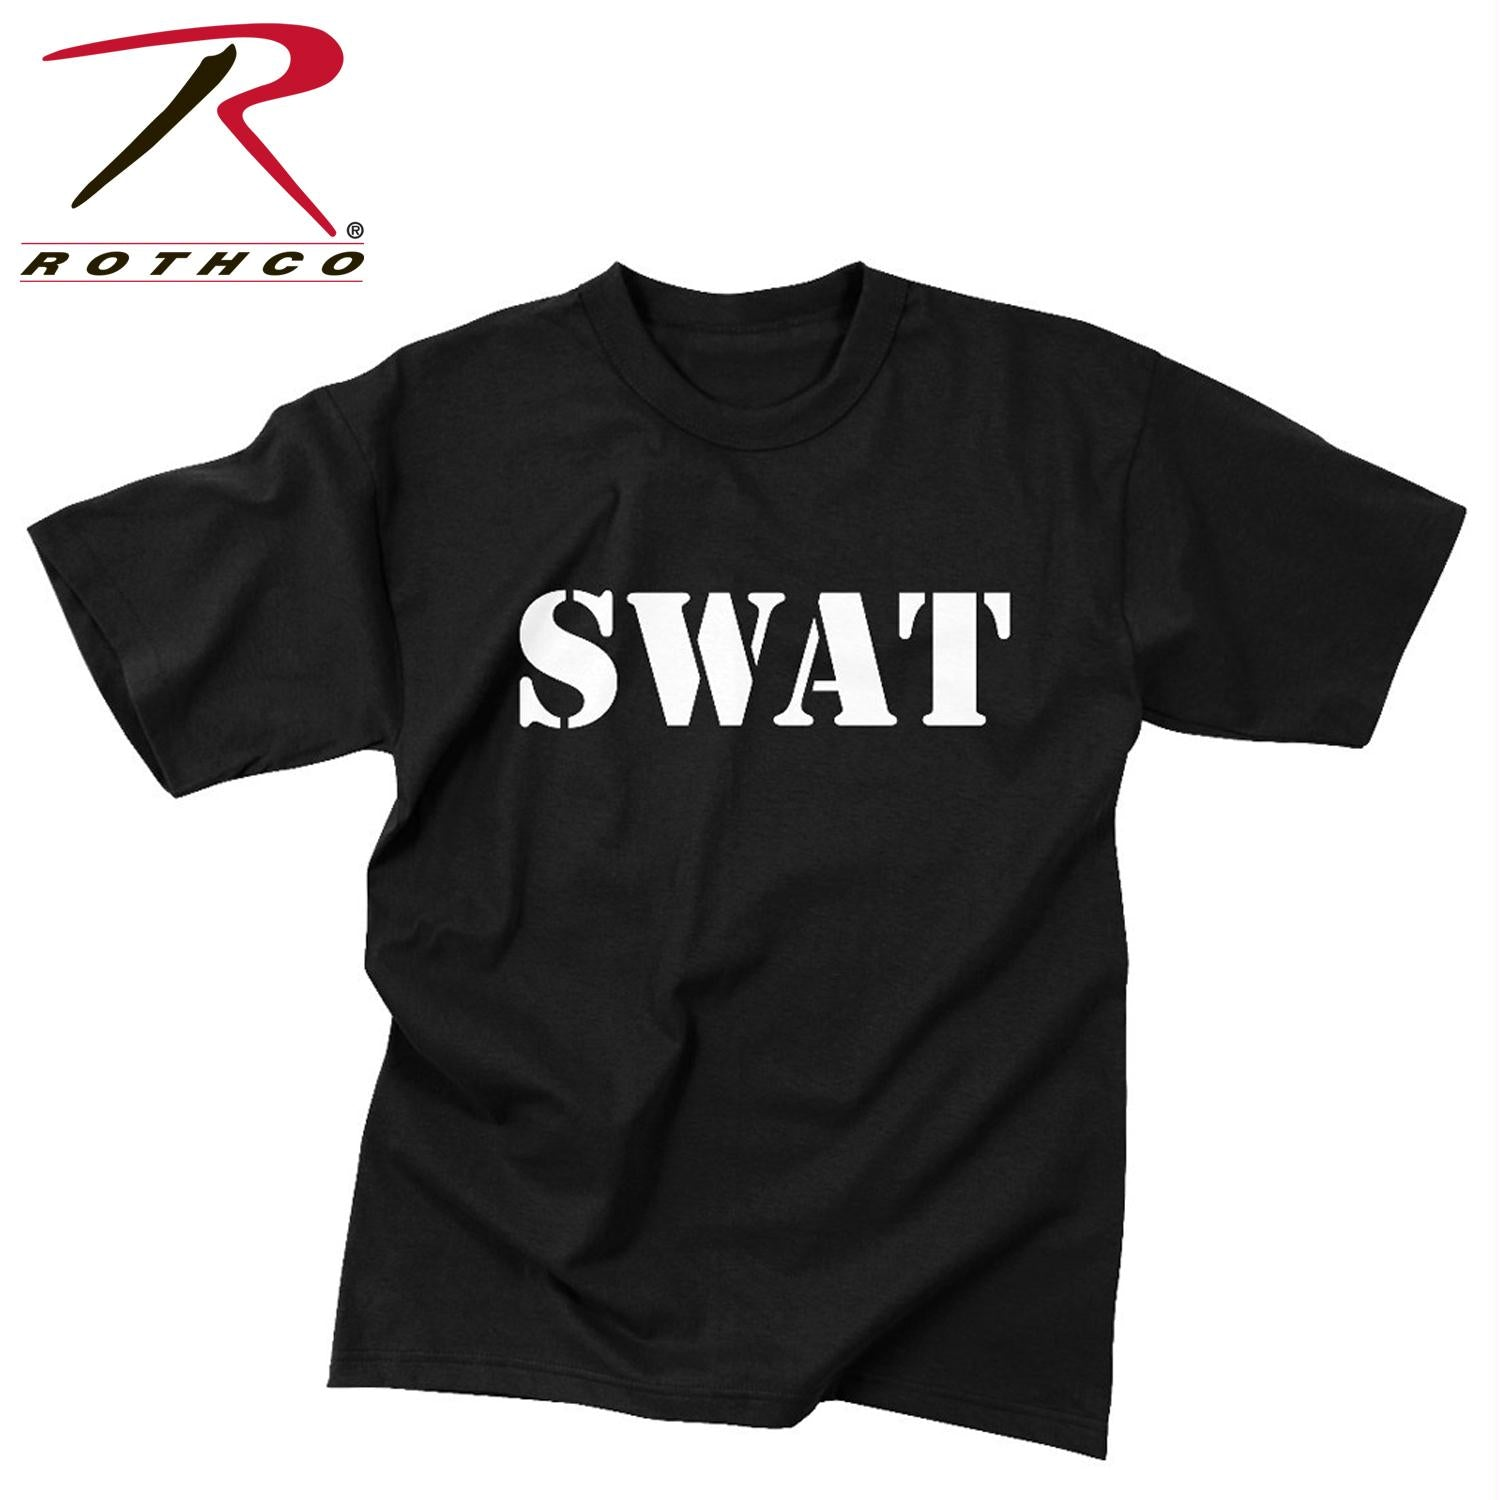 Rothco SWAT 2-Sided T-Shirt - M